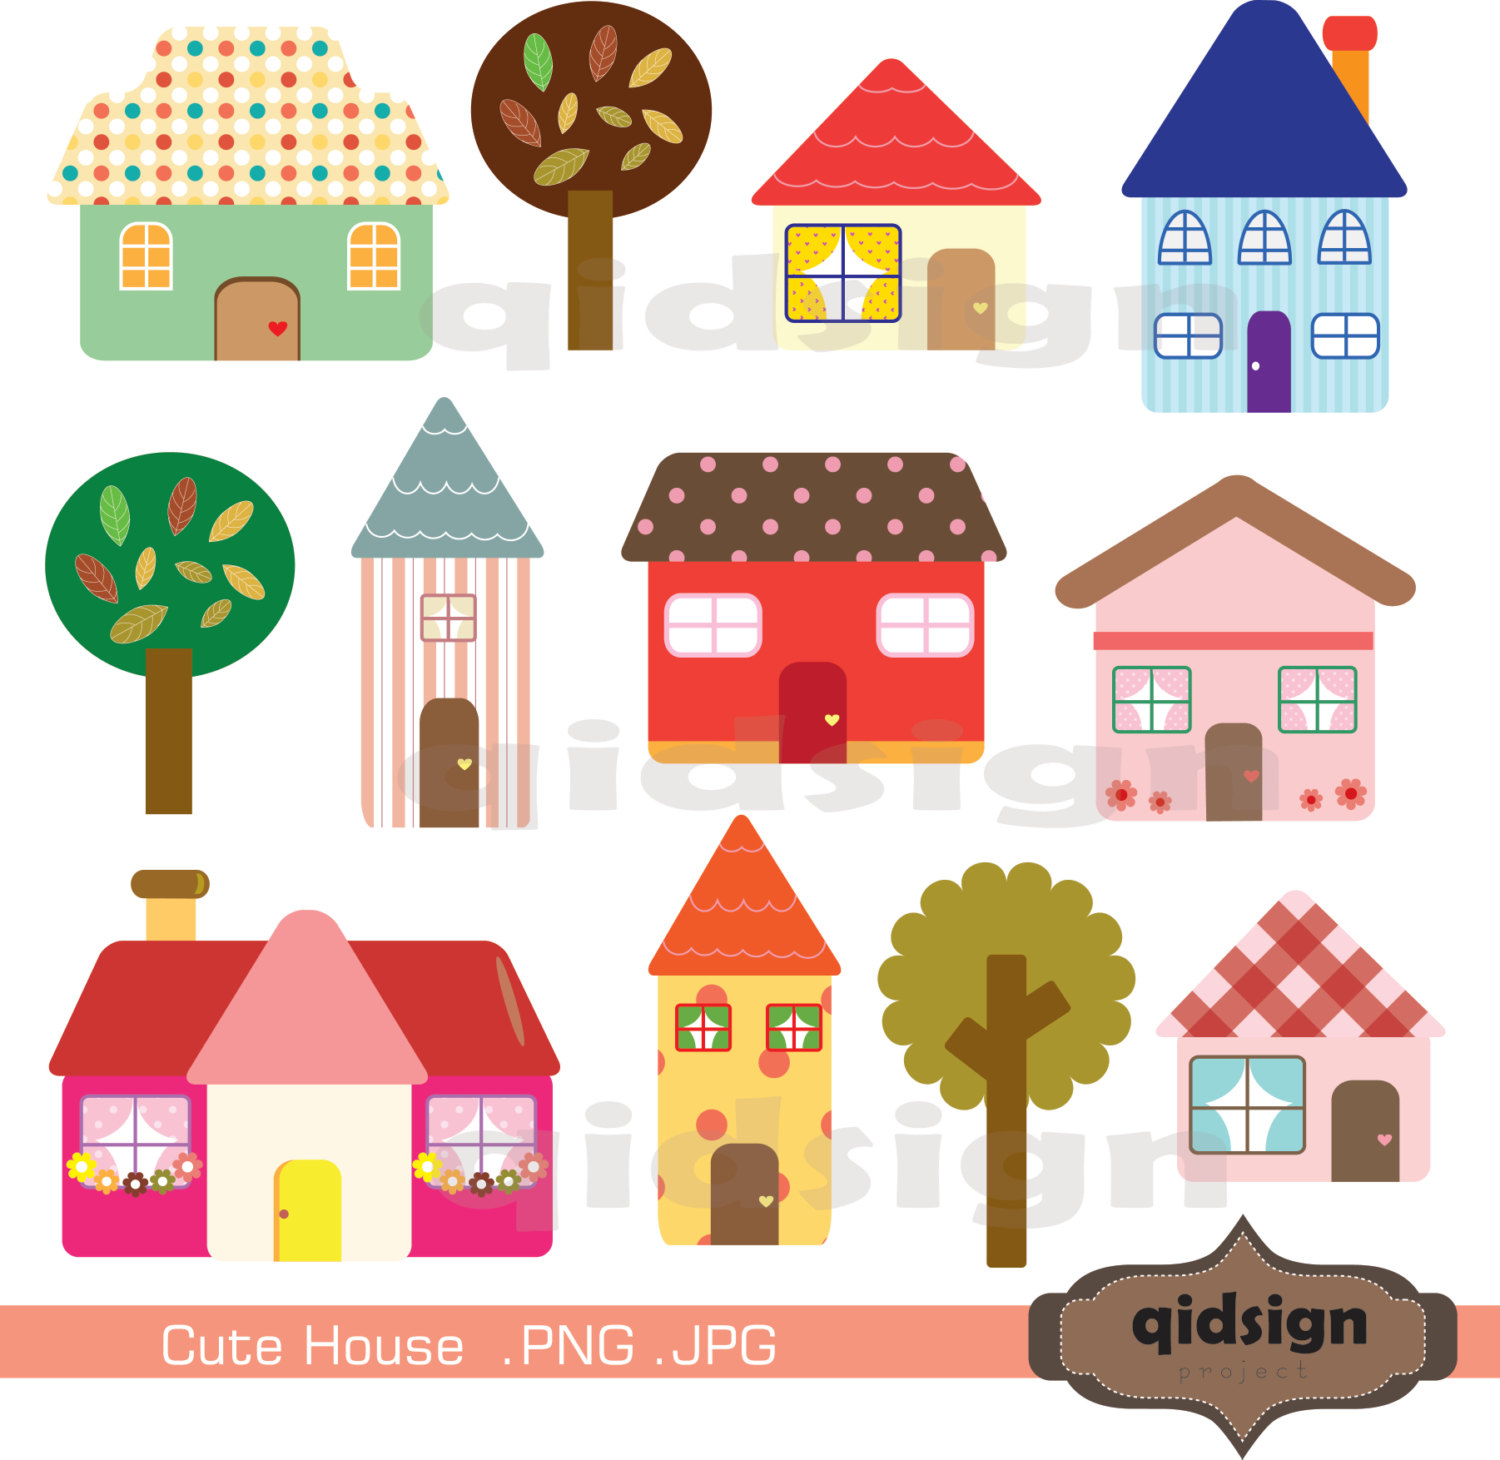 Hosue clipart cute Cute Commercial House Clipart Personal